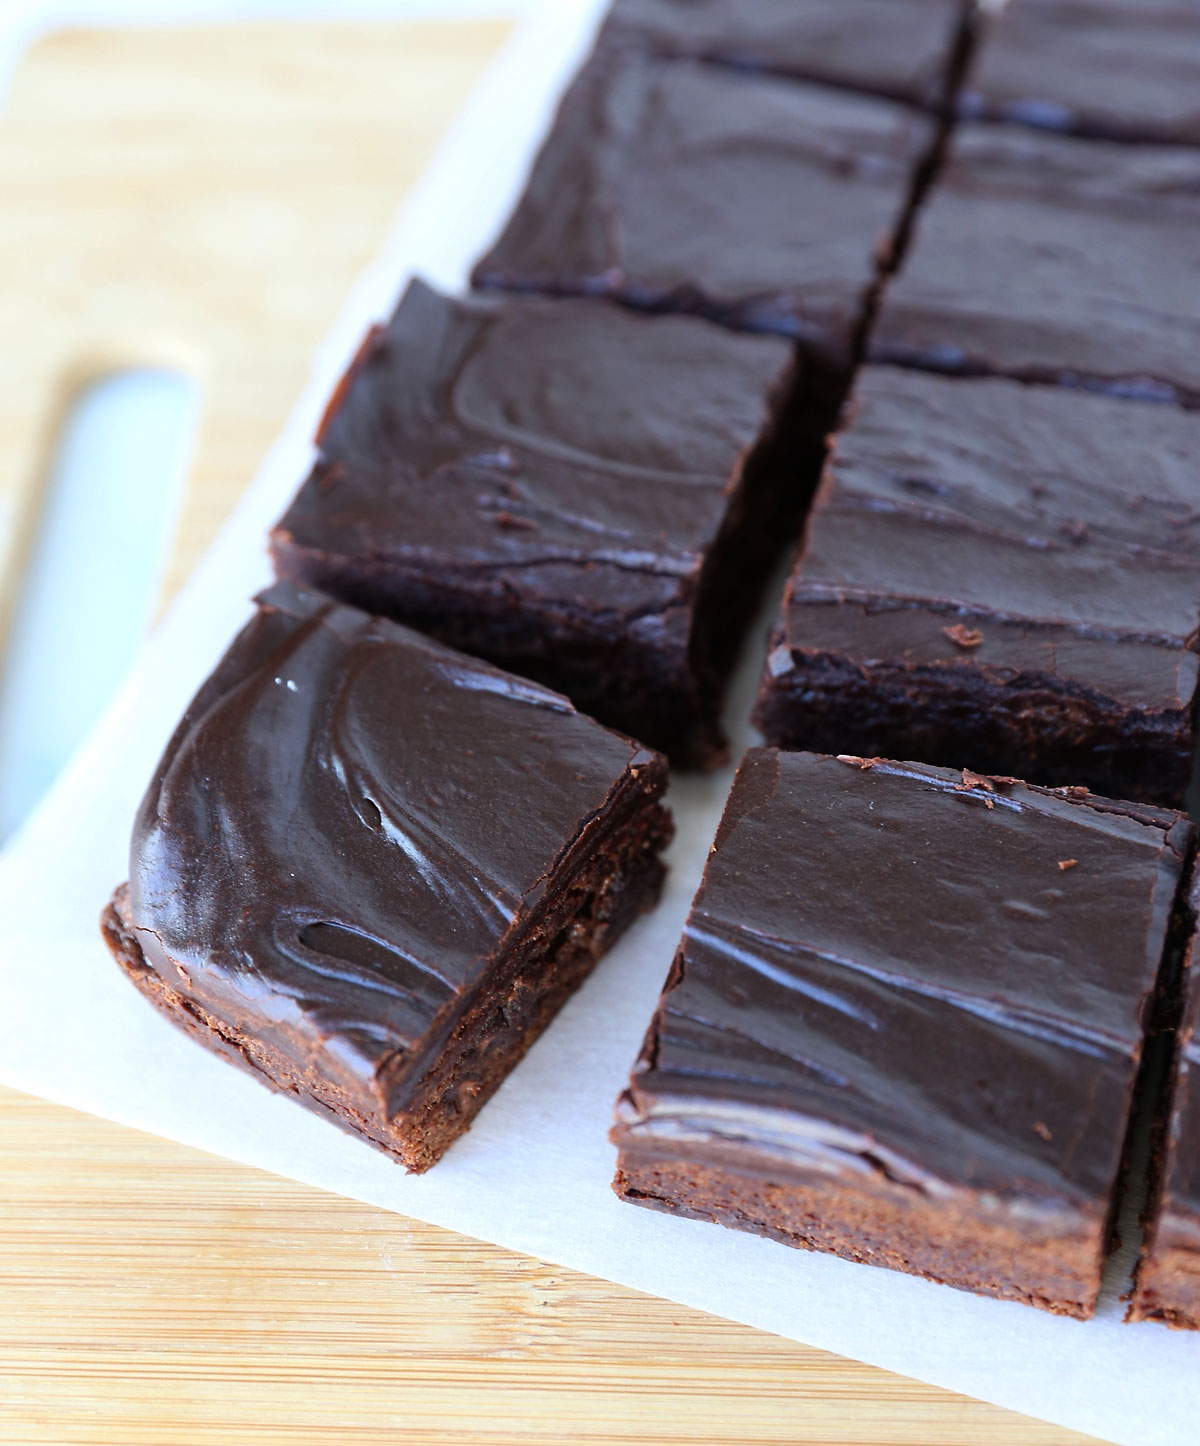 Frosted brownies on a cutting board